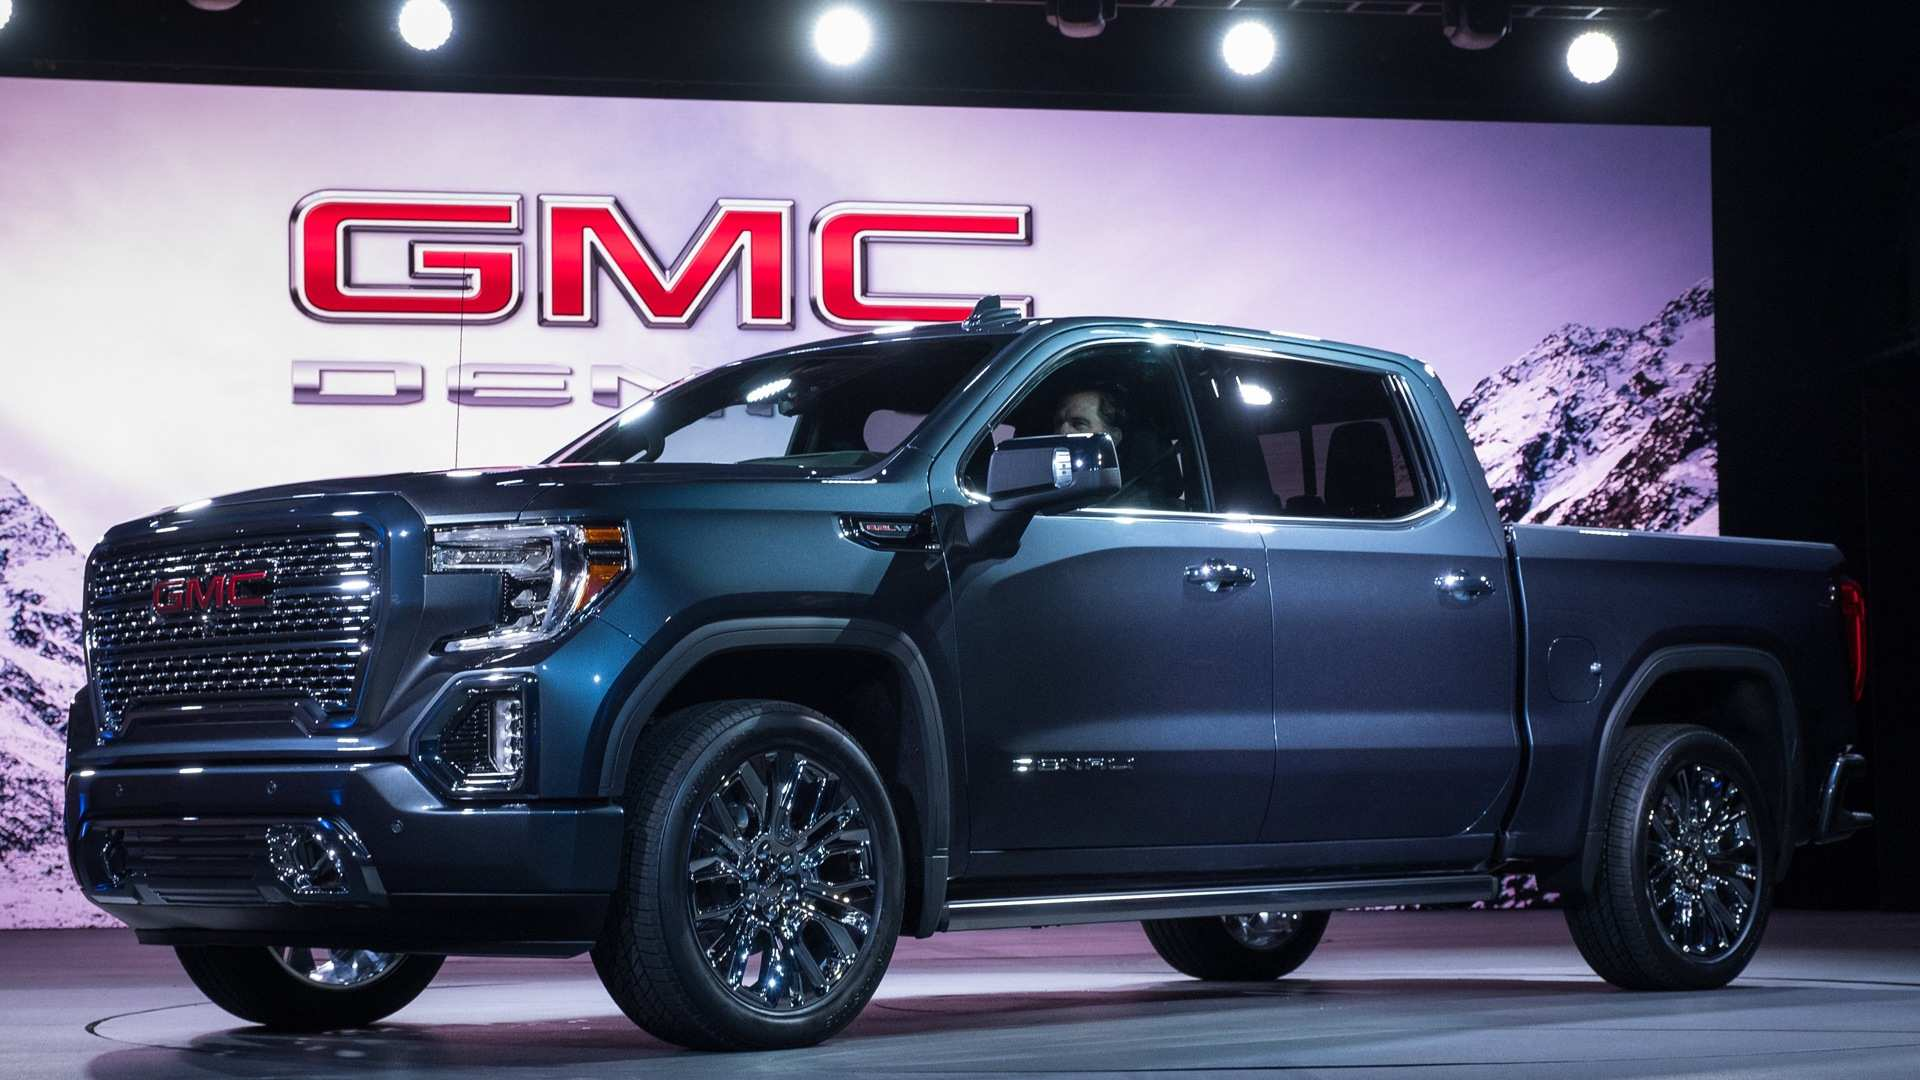 81 All New New Gmc 2020 New Concept for New Gmc 2020